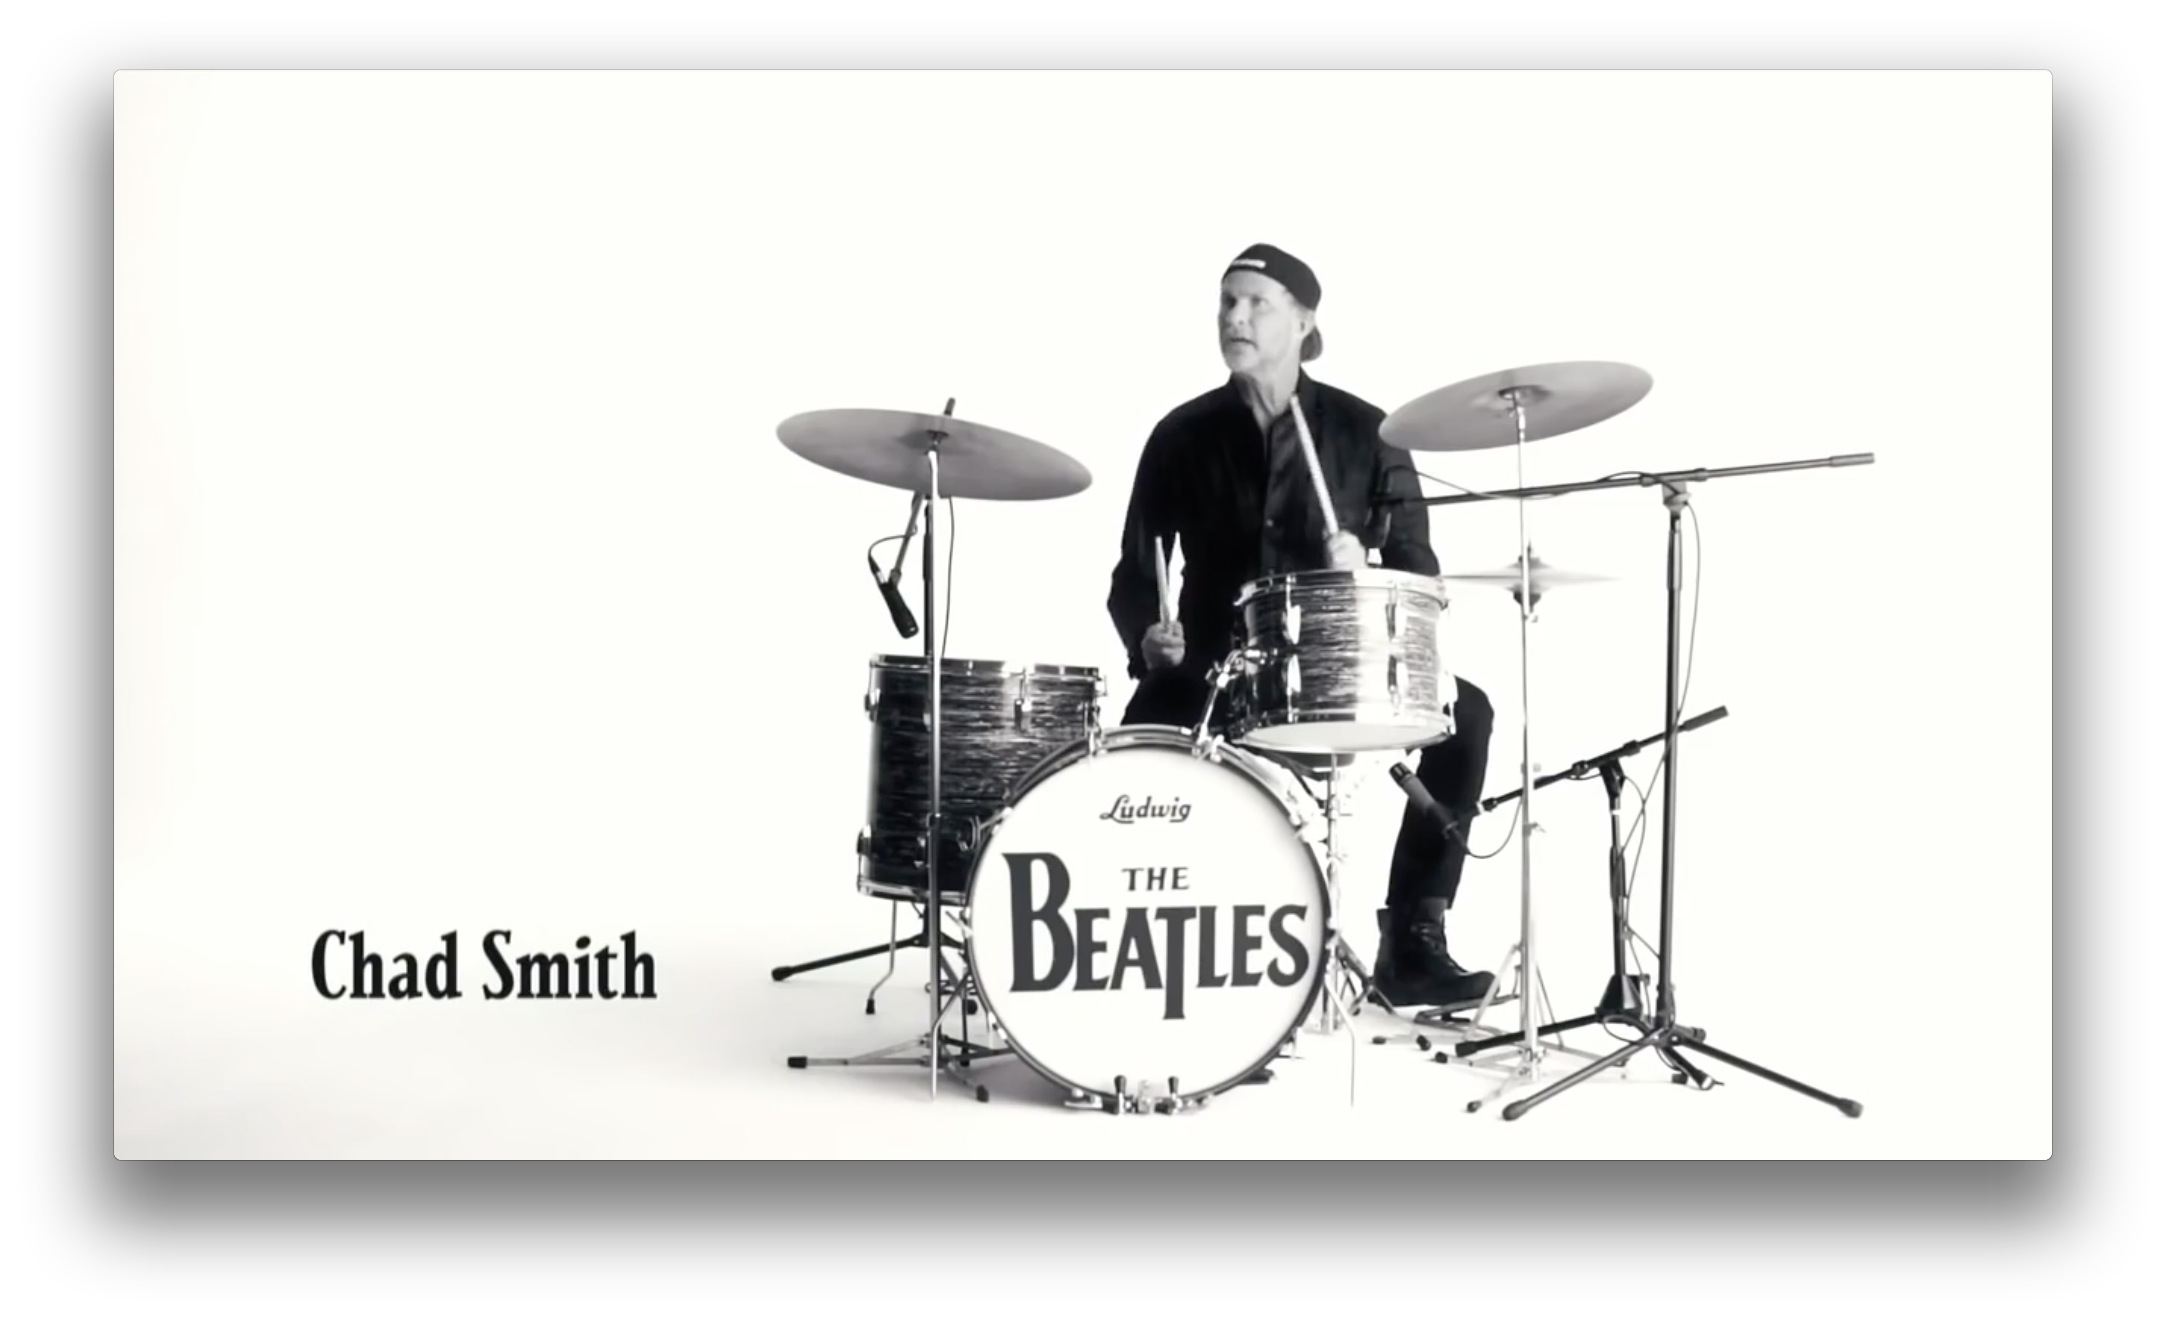 Ringo_Chad Smith